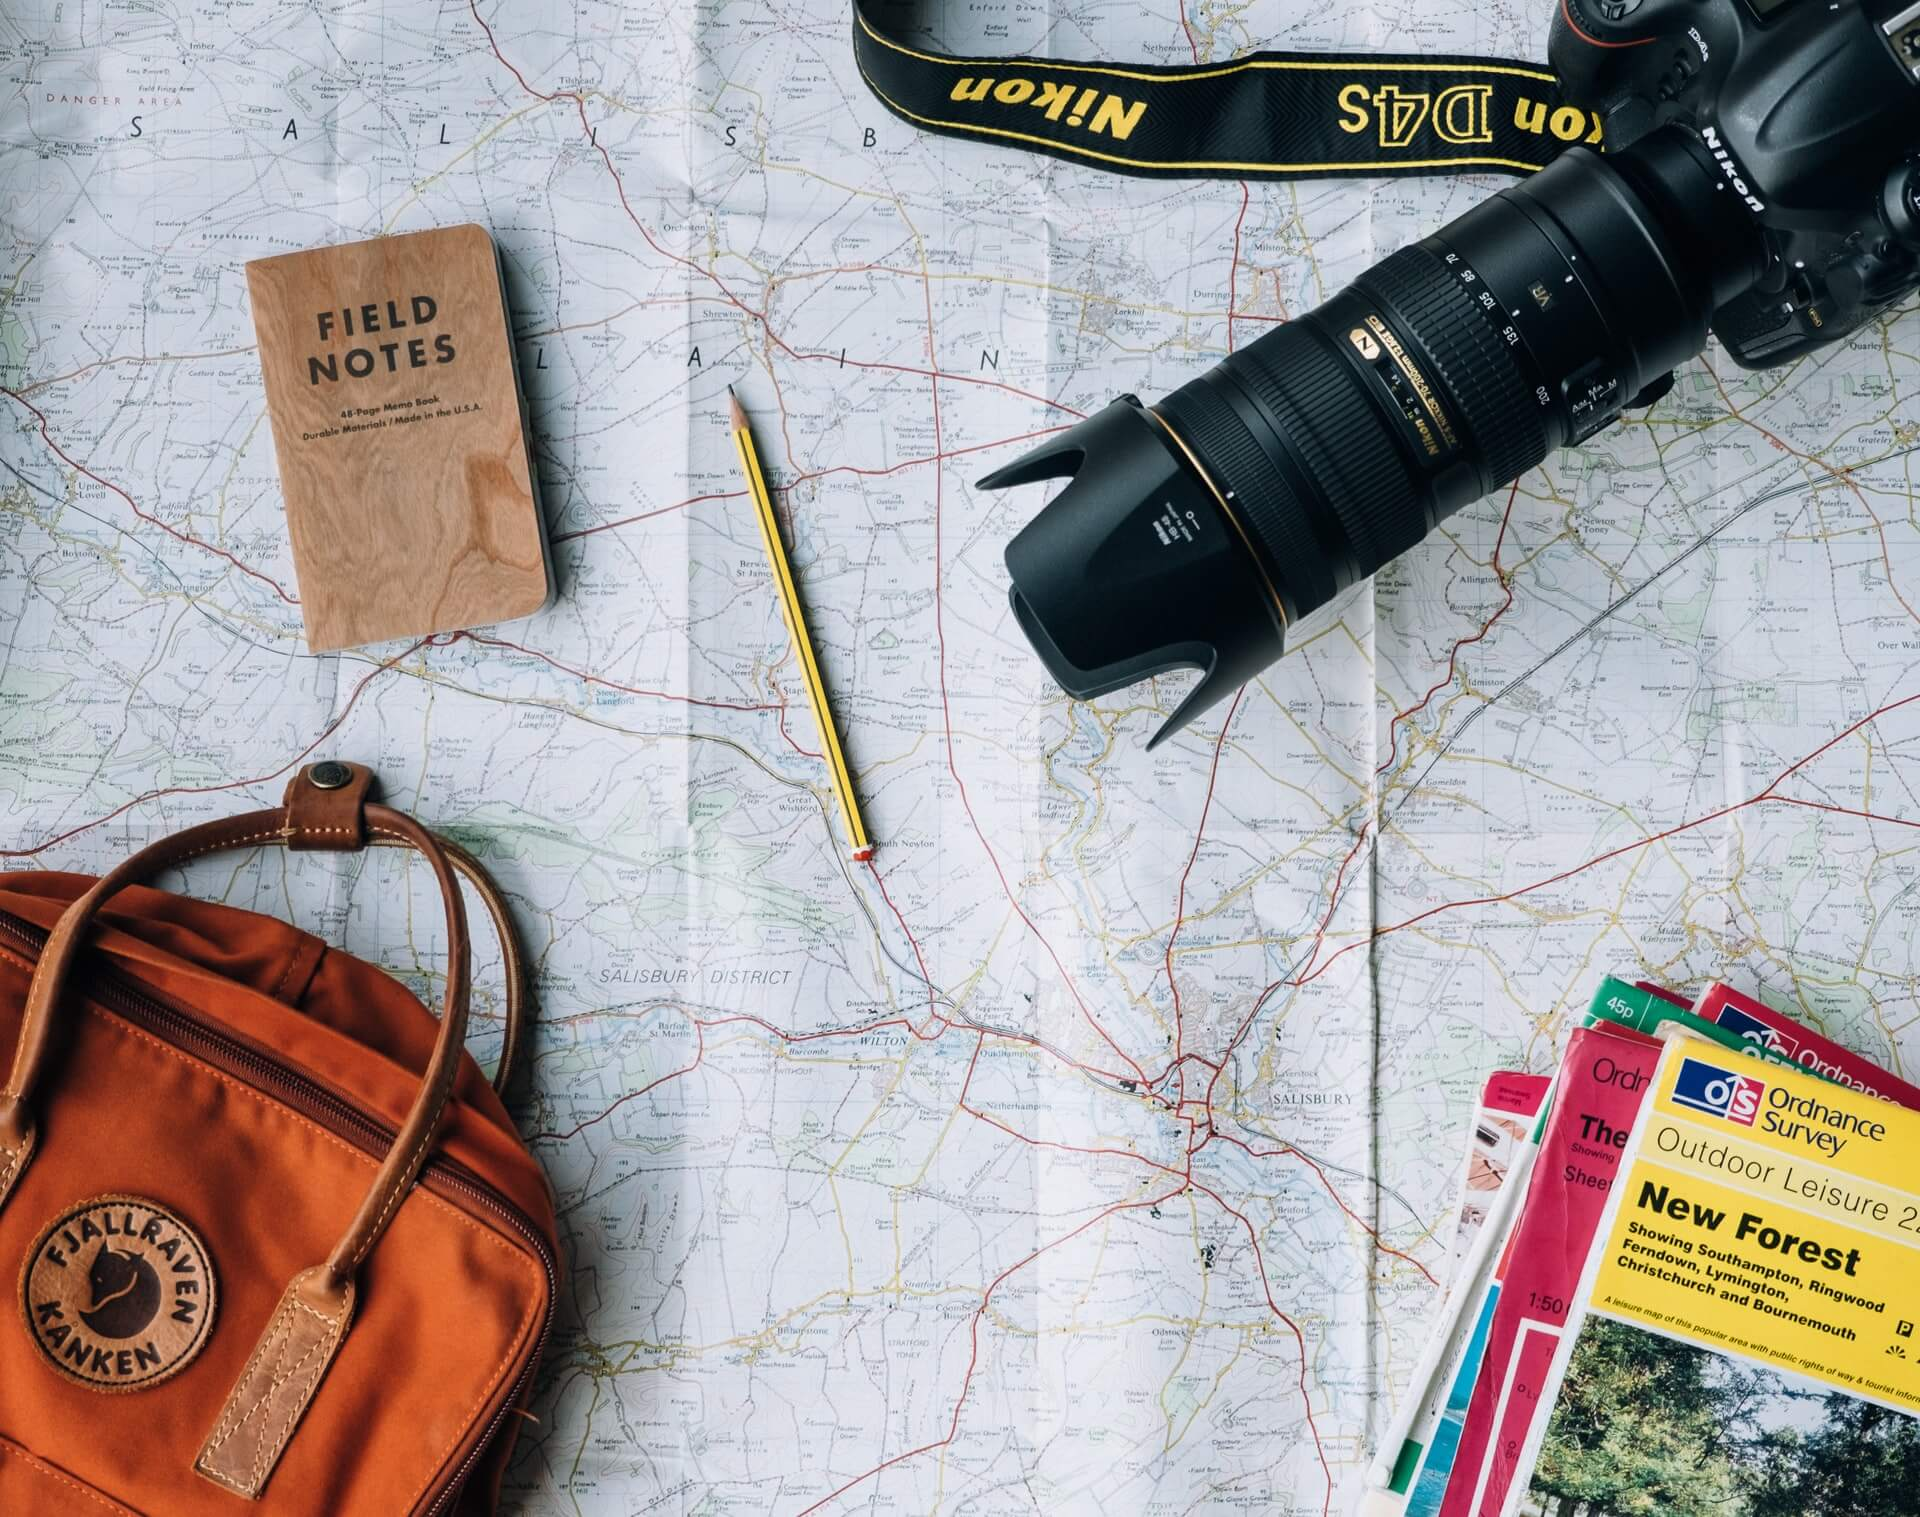 a camera and notebooks on top of a map